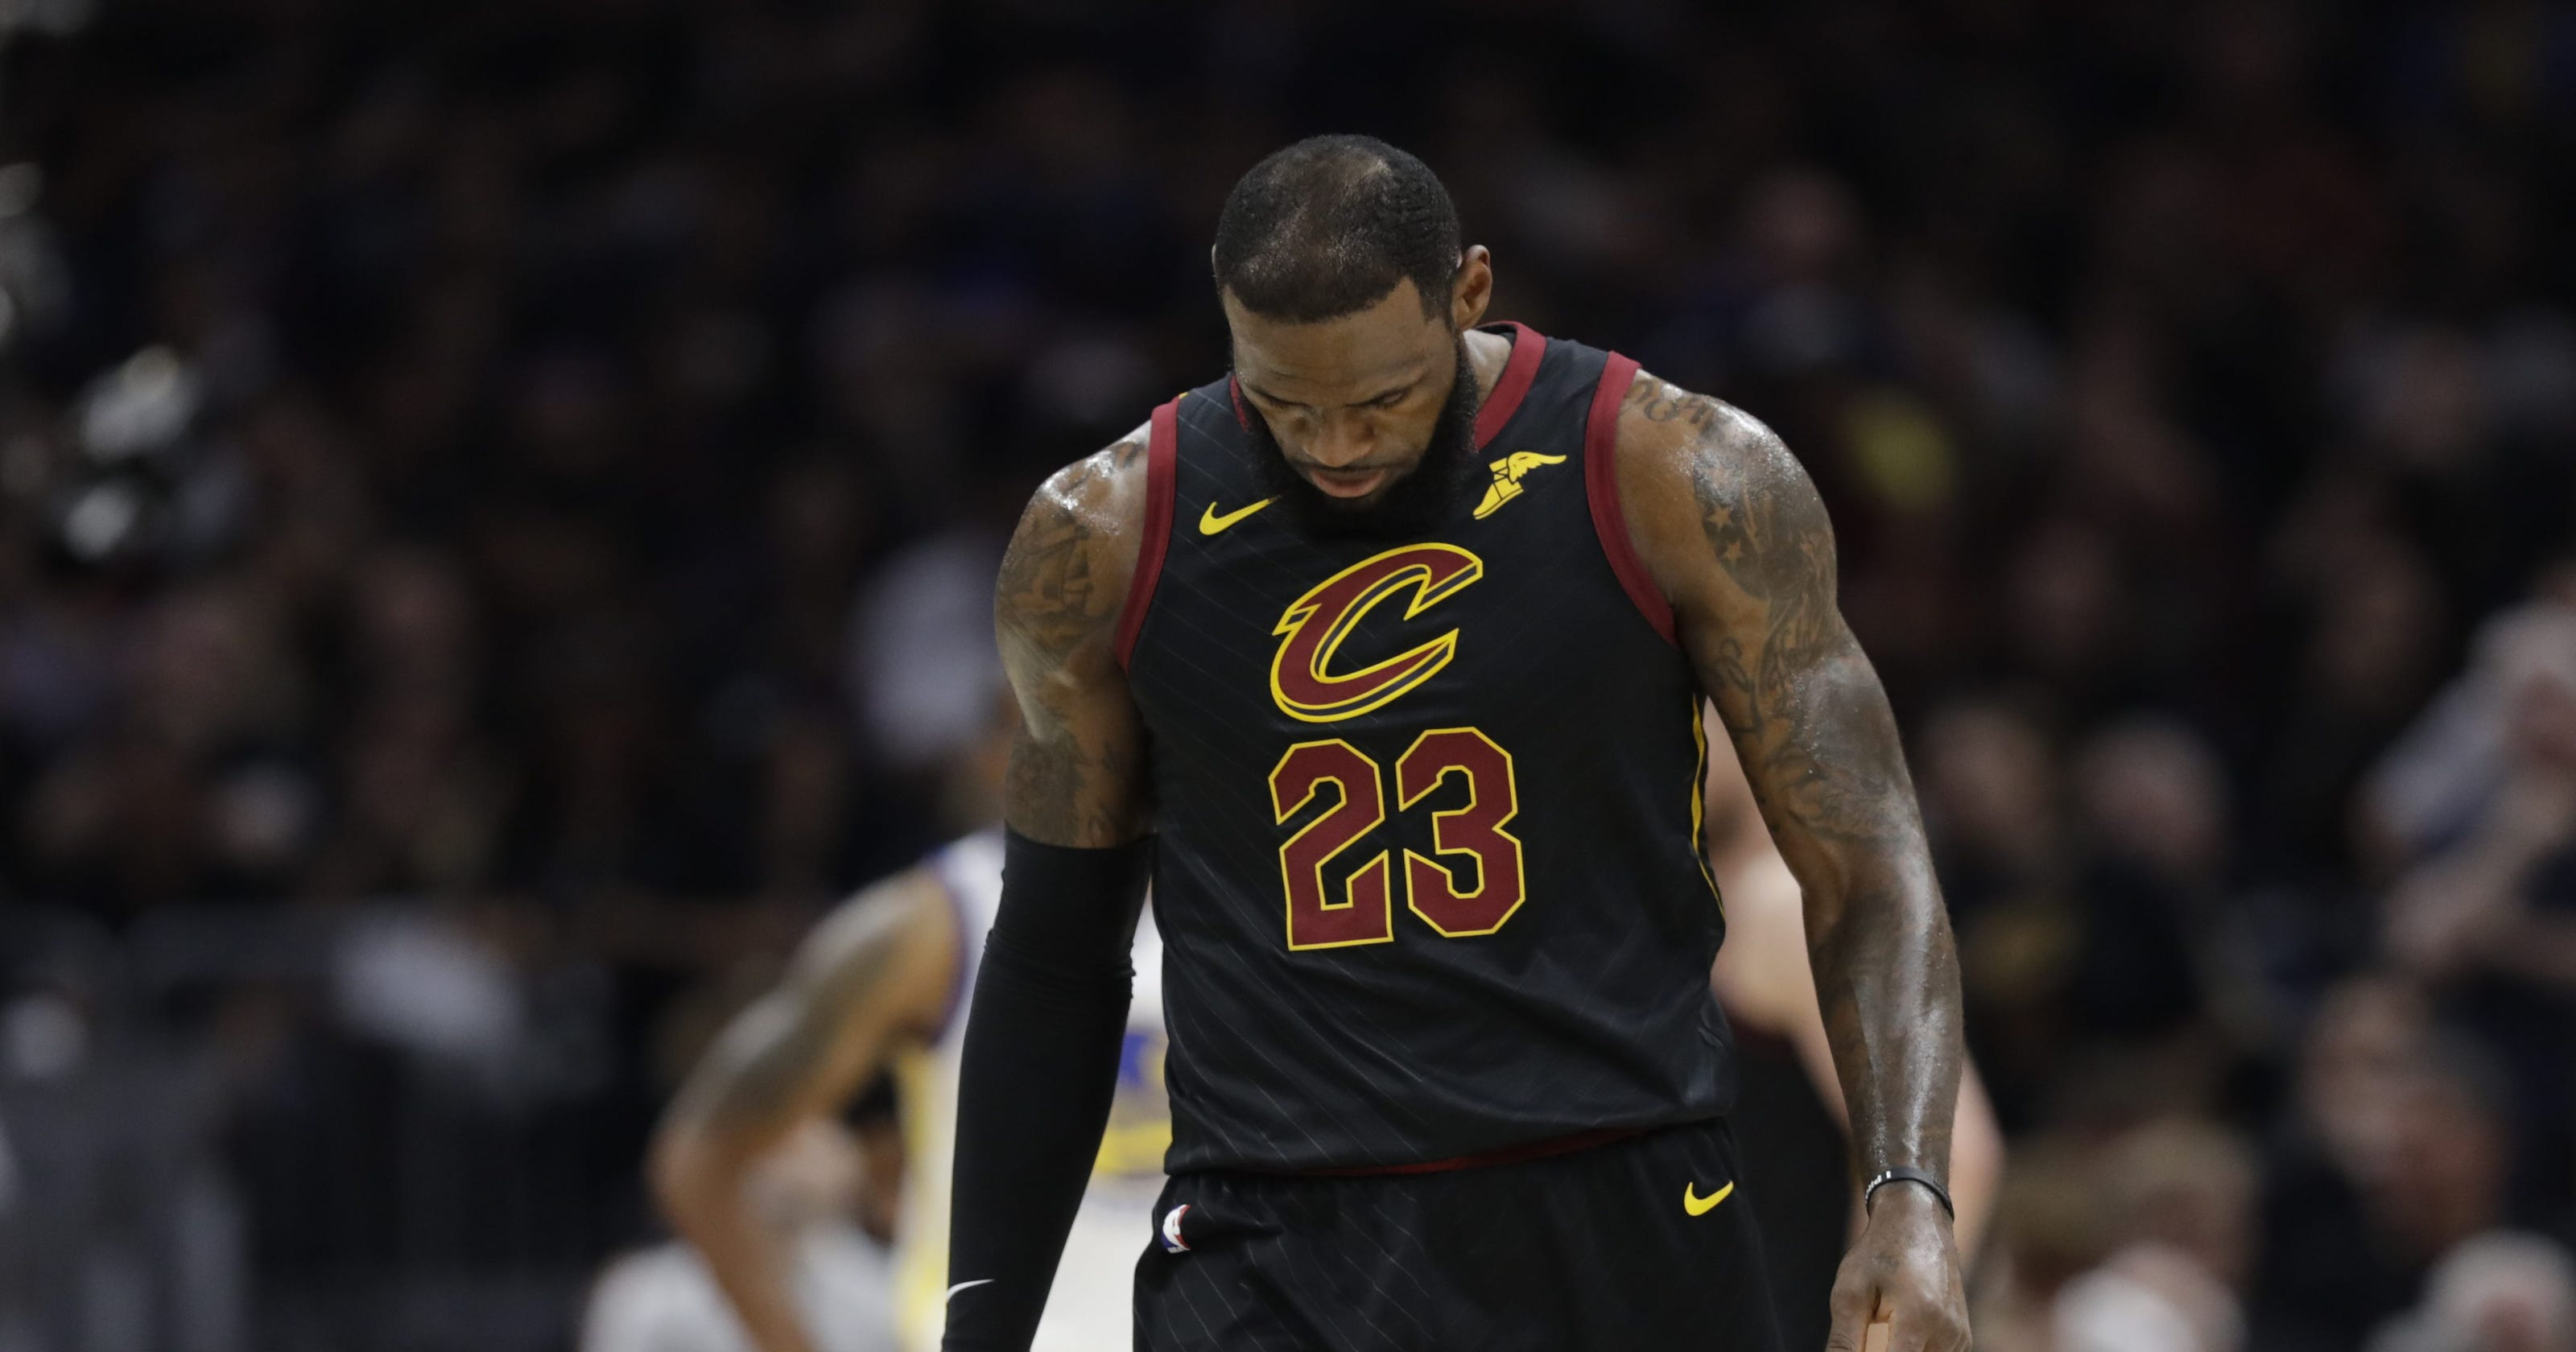 ddcda9b8158c Twitter reacts to LeBron and Cavs getting swept in NBA Finals